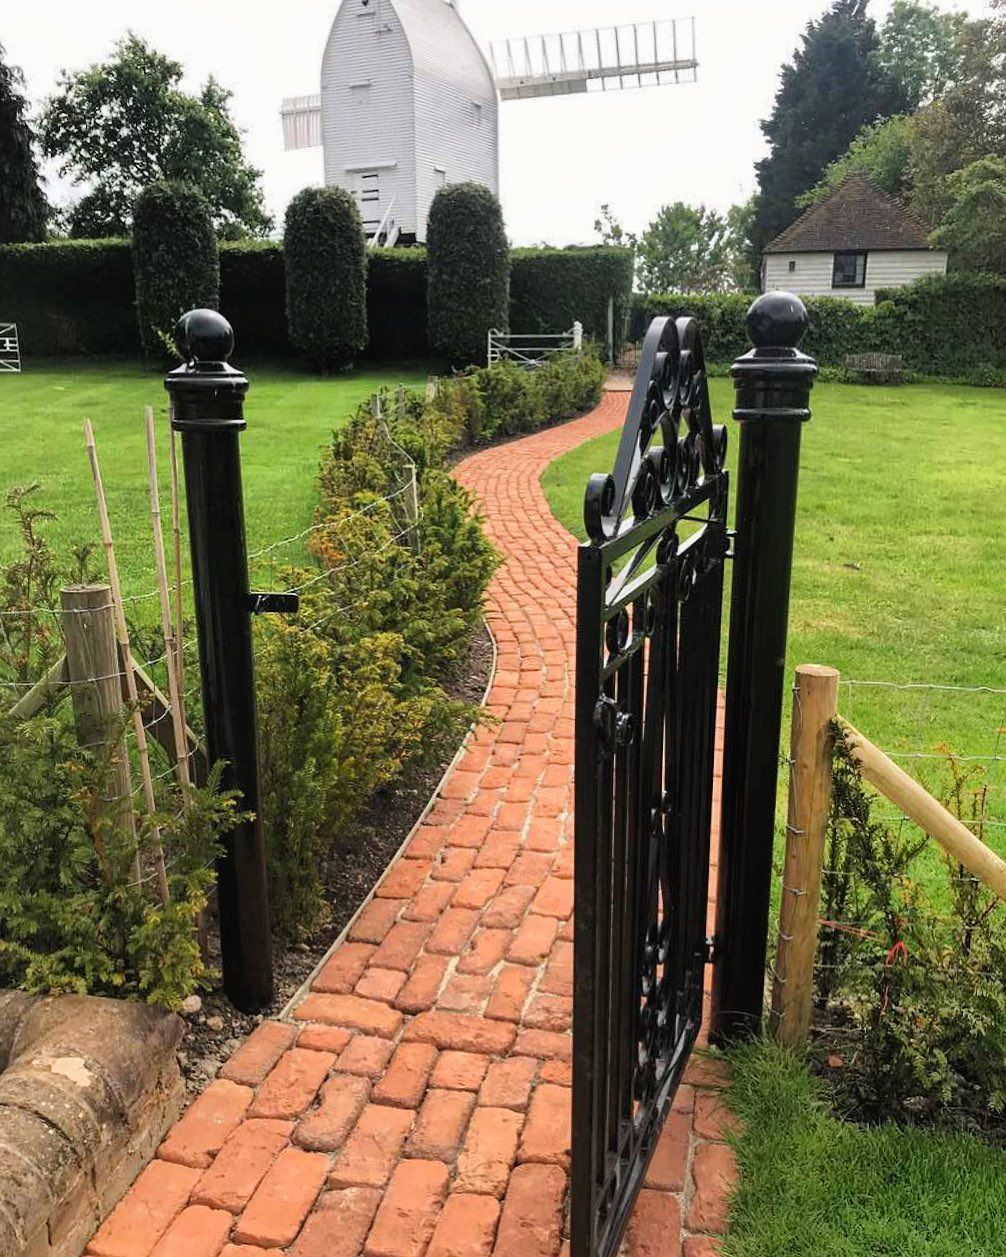 Wonderful customer photo of our Jacobean Brick Paving. A great choice for adding character and maturity to any traditional garden design.  Product link in bio. . . . . . #westminsterstone #gardendesign #gardenpath #gardenwalkway #brickpavers #brickpaving #brickpatio #traditionalgarden #traditionalpath #selfbuild #rennovation #exterior_design #landscapedesign #cottagegarden #pathway #periodproperty #pavers #terracottatiles #gardenlandscaping #jacobean #homeandgarden #backyarddesign #kitchengarden